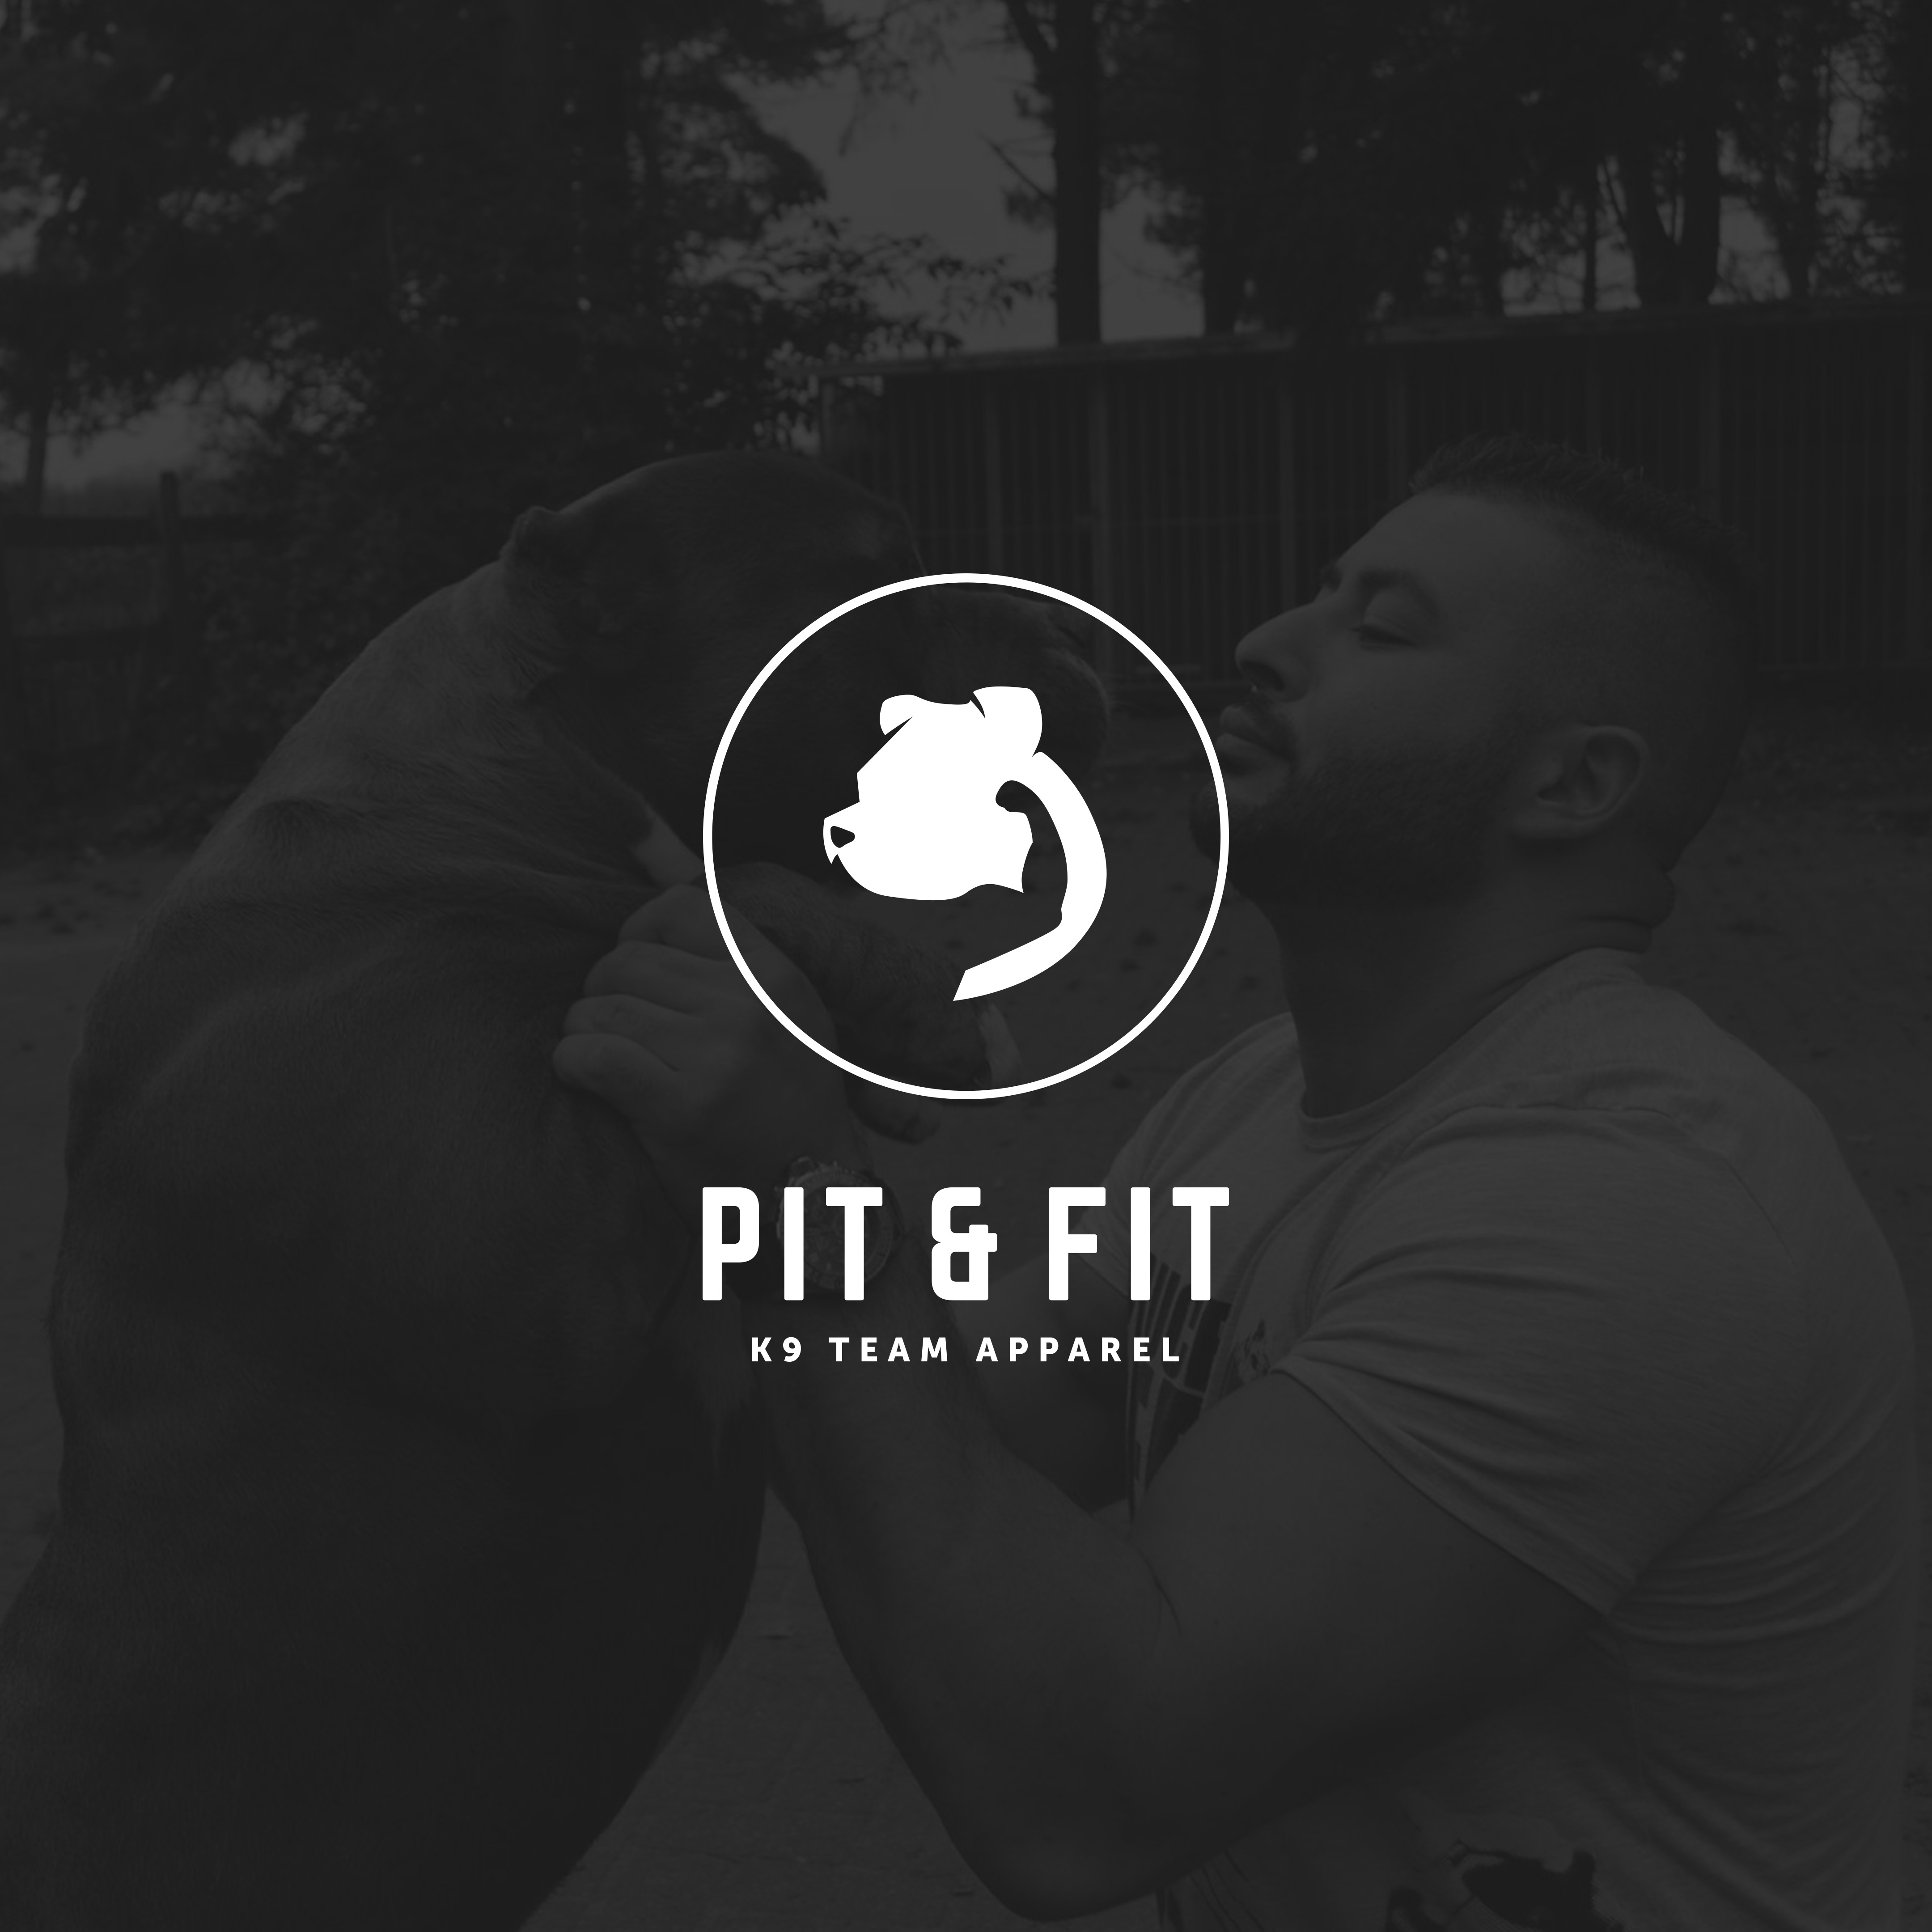 create brand for pit & fit k9 team apparel